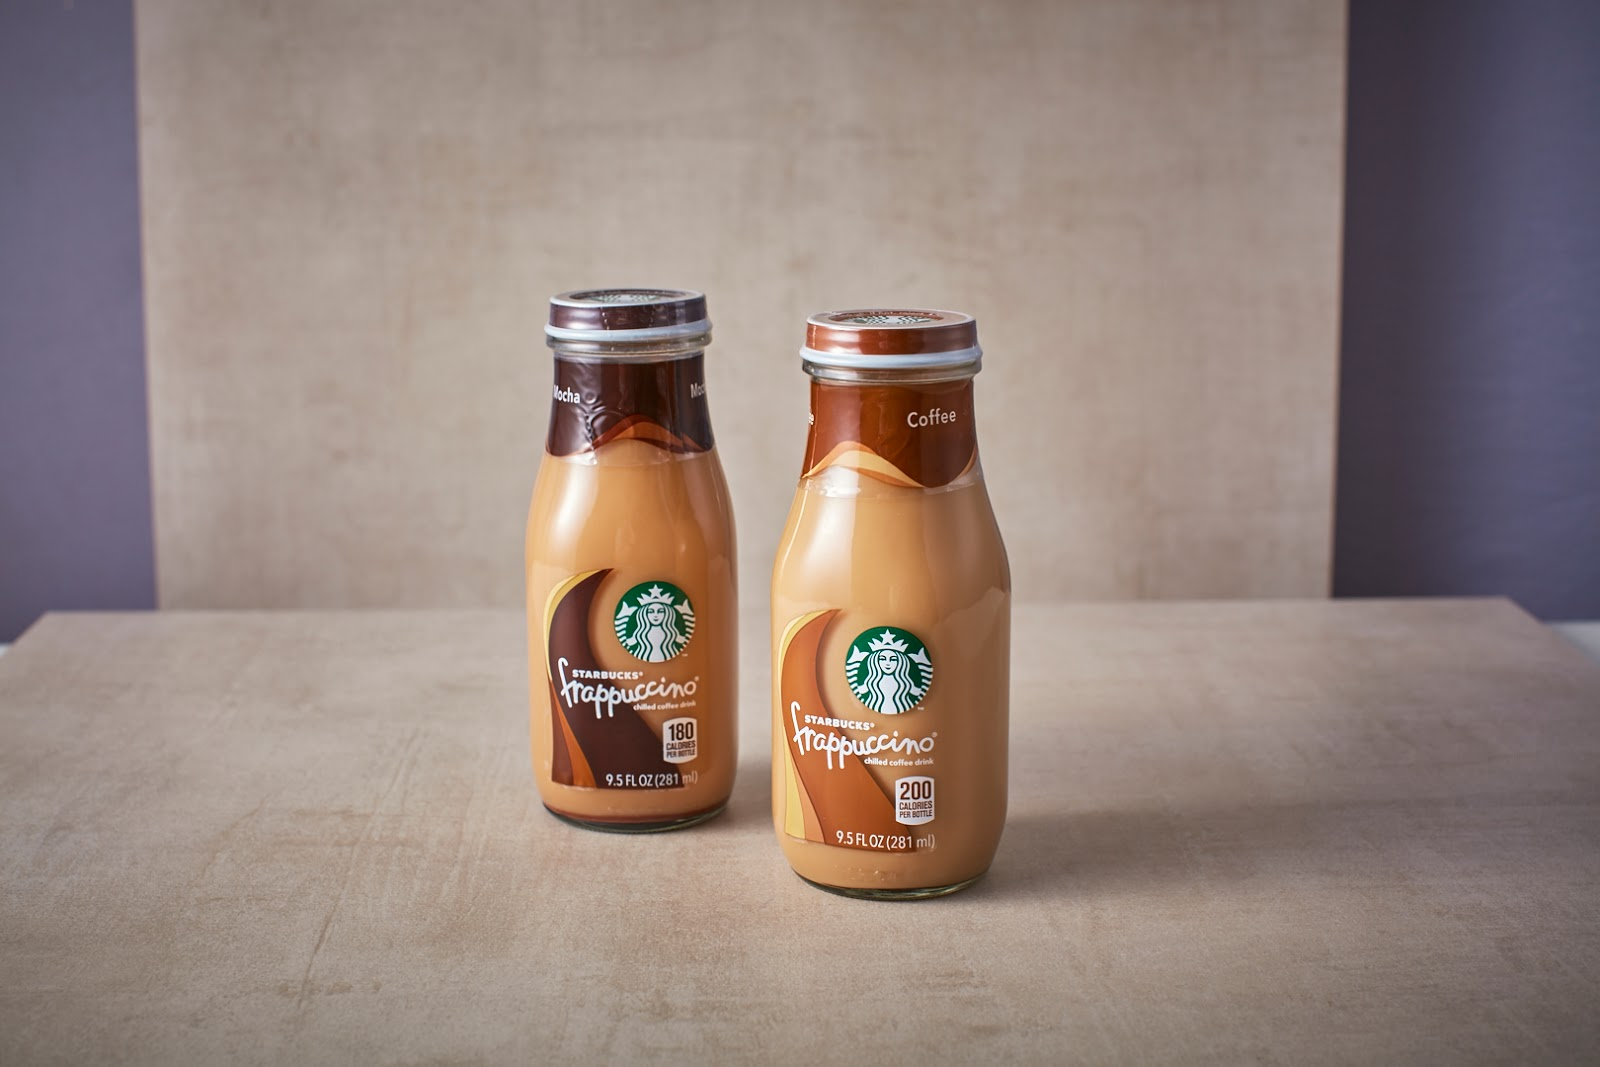 enjoy your starbucks ready to drink frap coffees anwhere